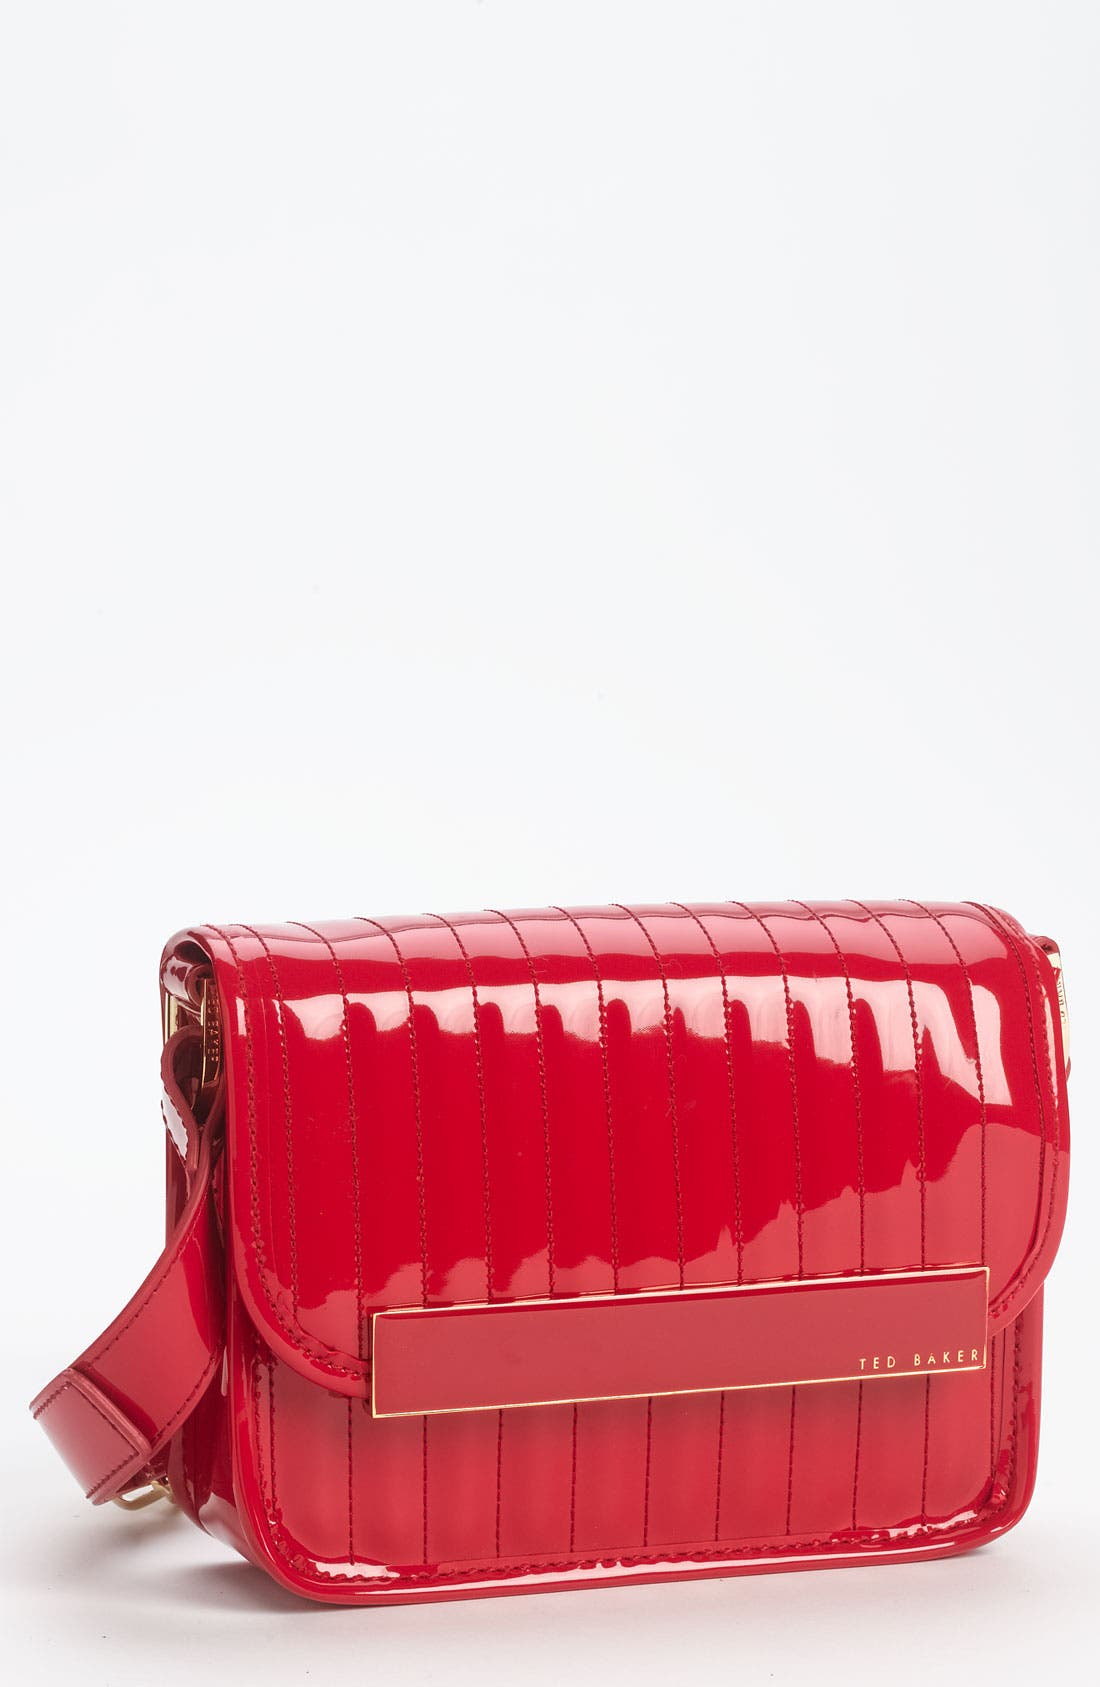 Alternate Image 1 Selected - Ted Baker London 'Small' Crossbody Bag